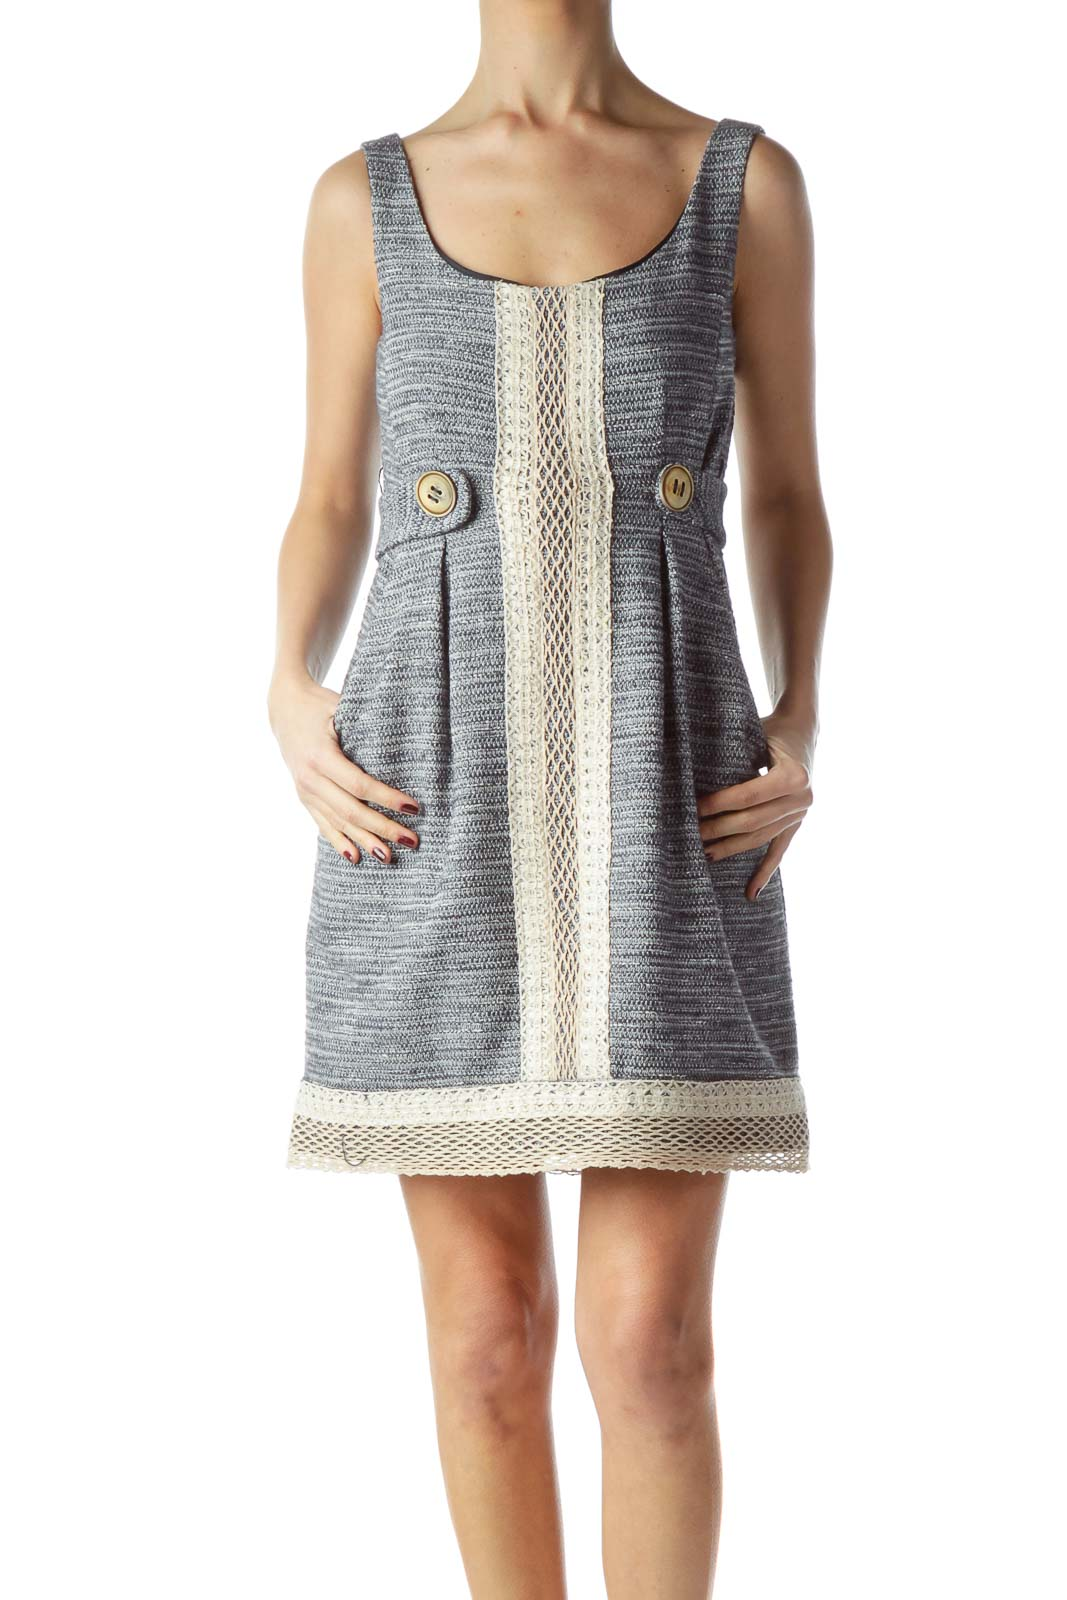 Black Beige Cream Knit Textured Dress